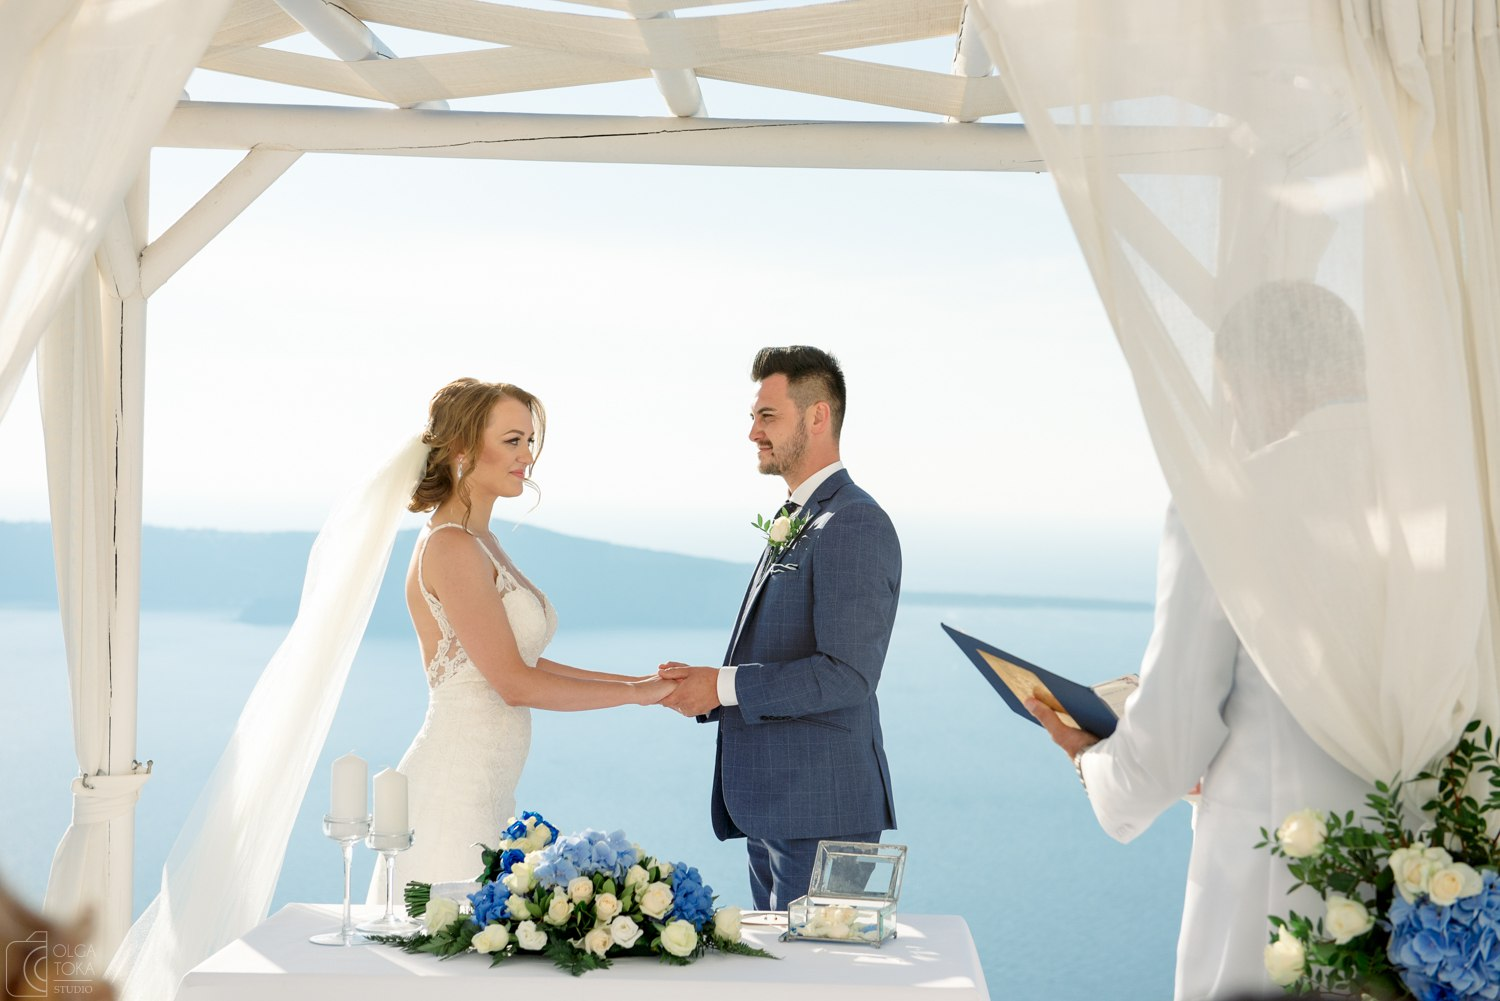 what is the wedding ceremony in Santorini about?